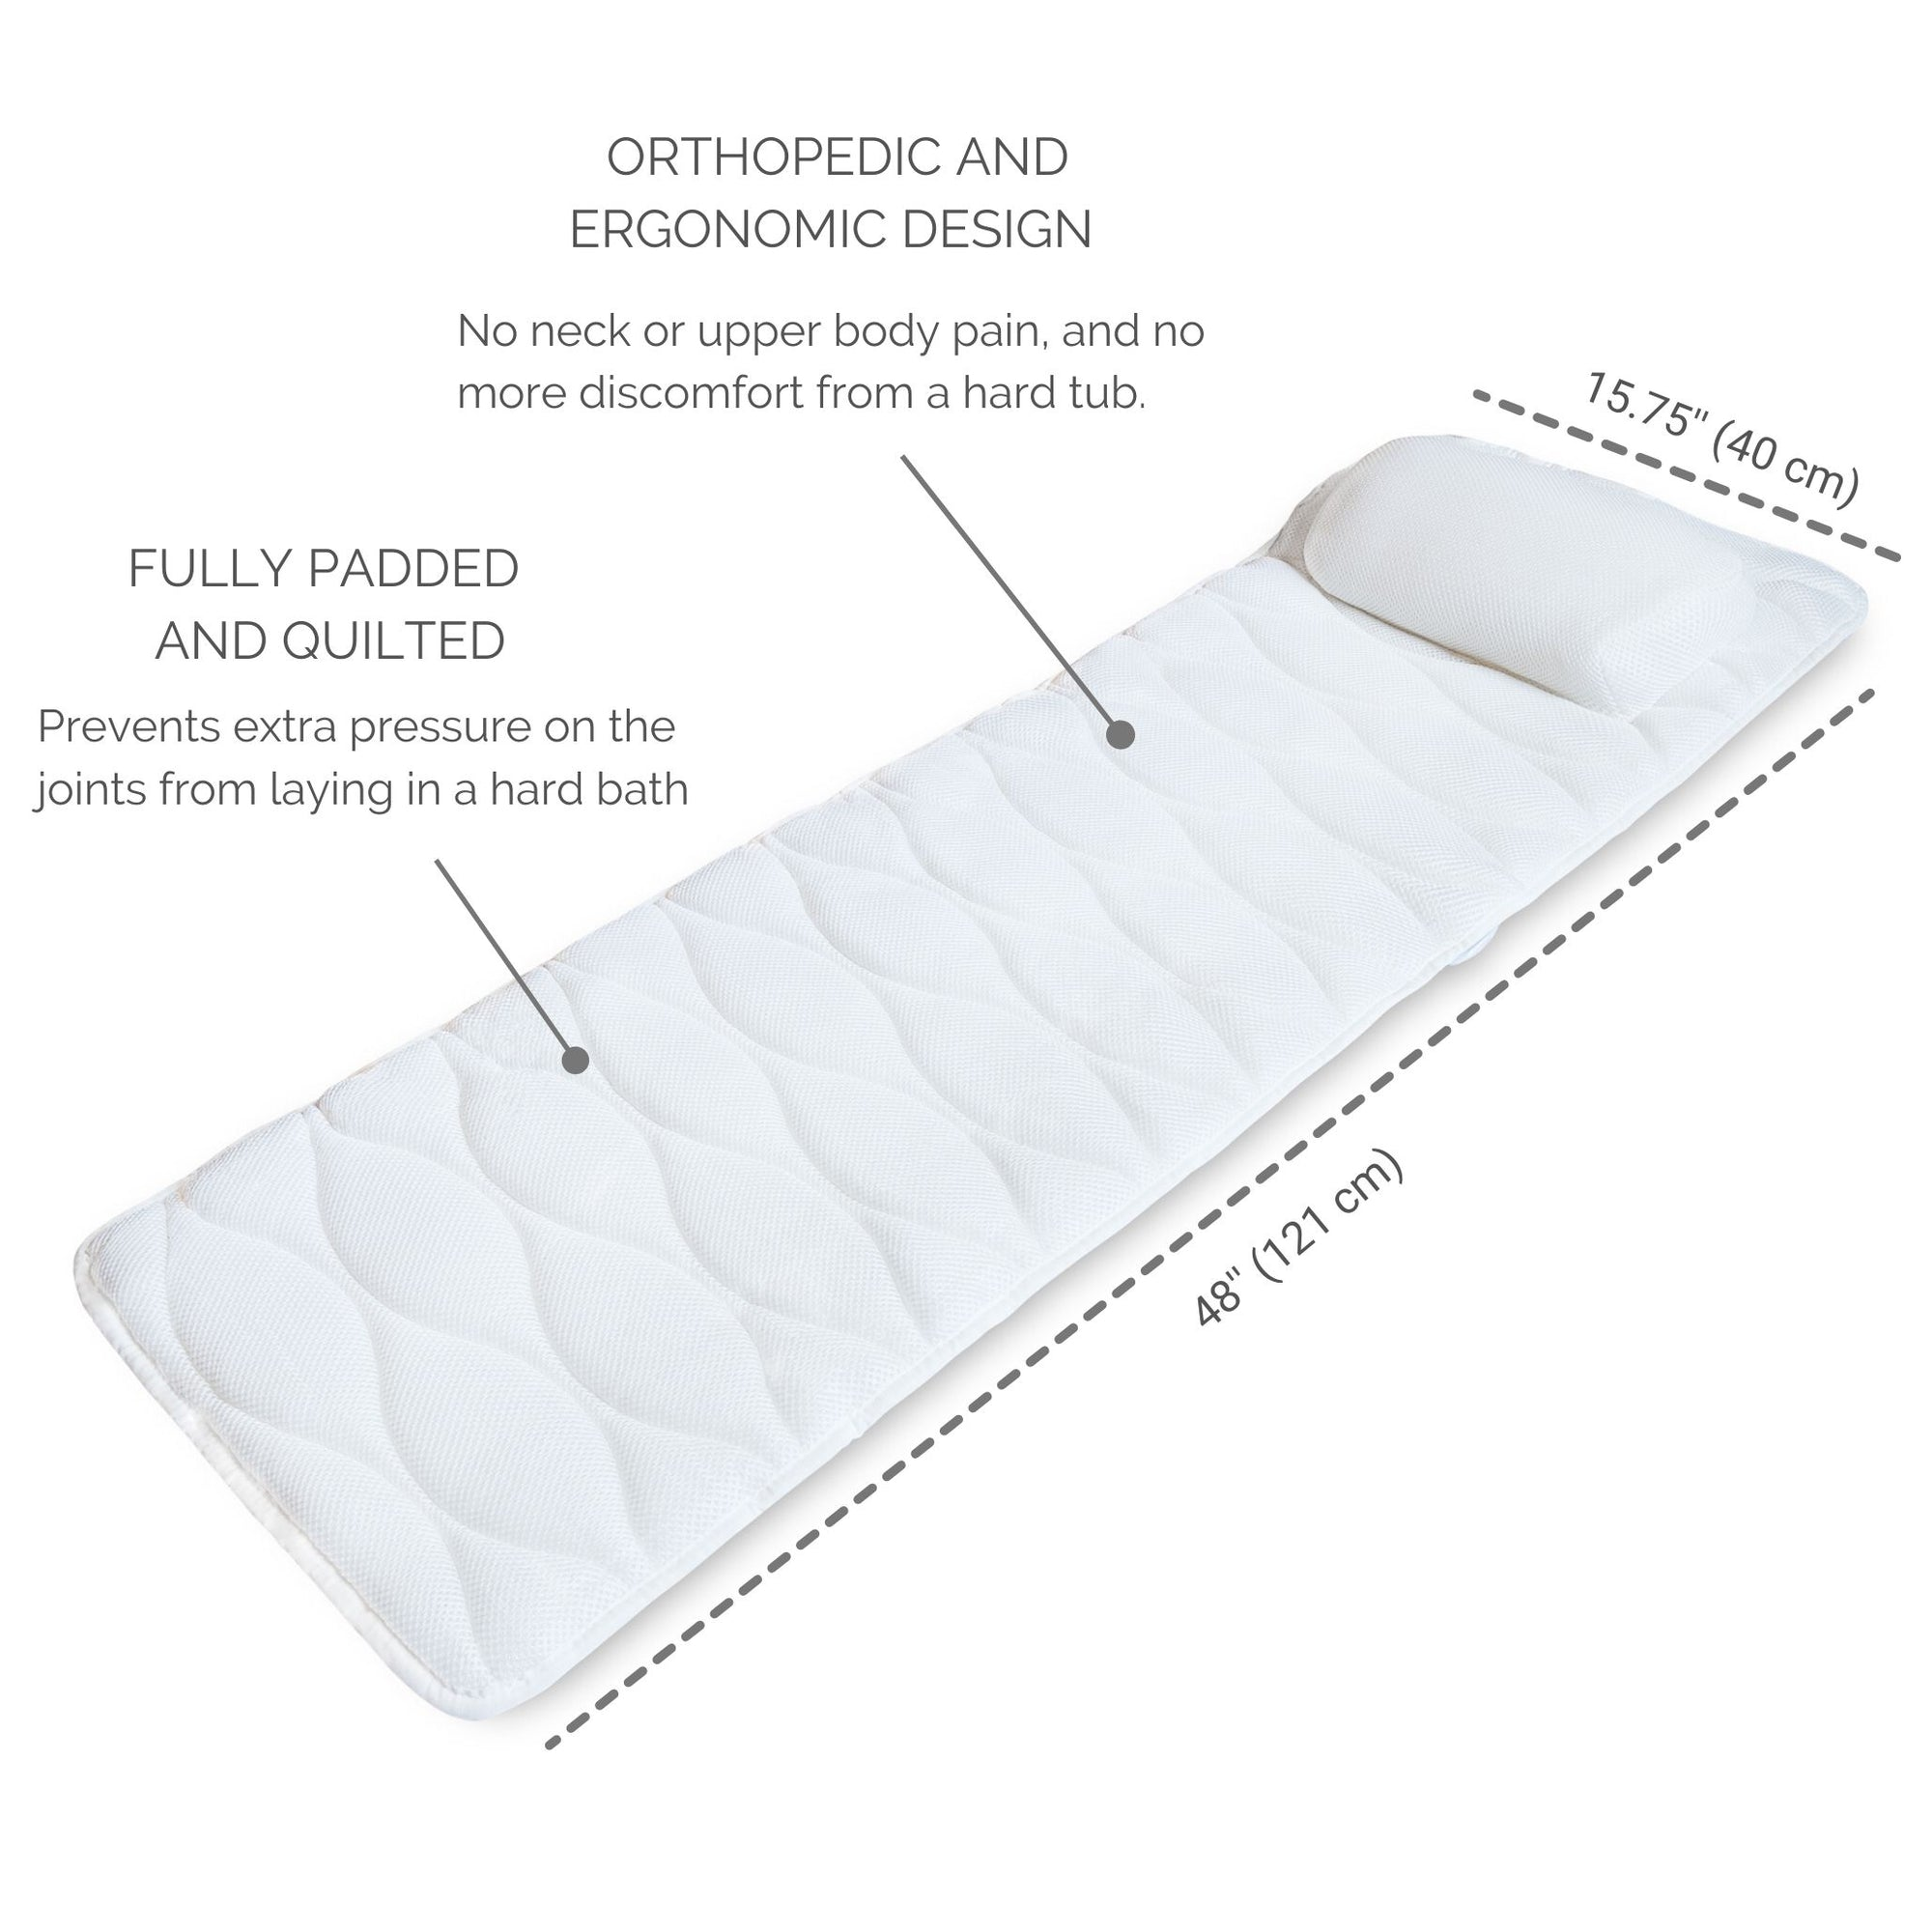 Full body bathtub pillow for tub features and benefits.